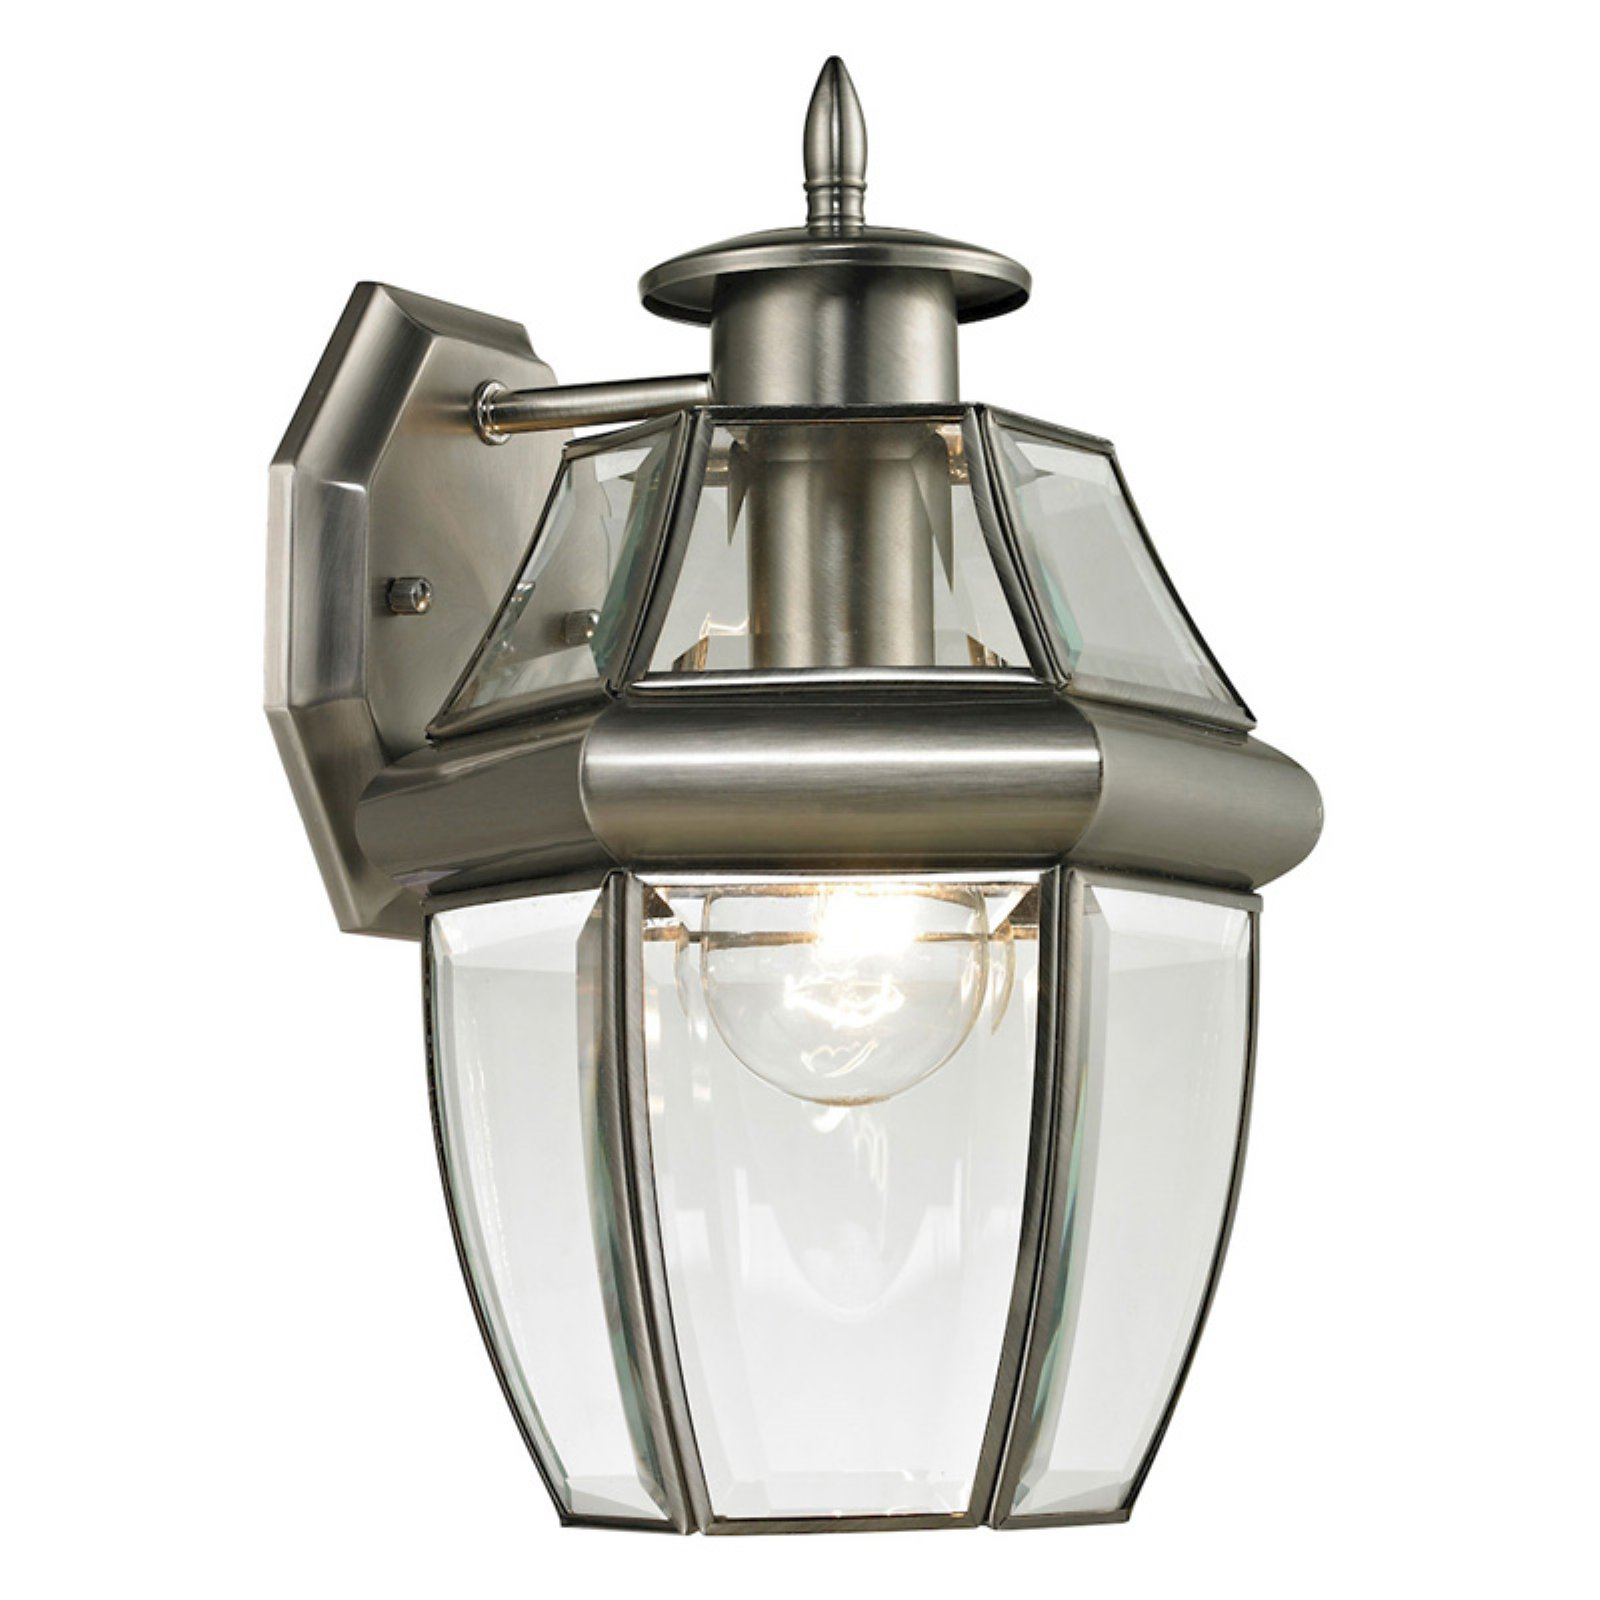 Thomas Lighting Ashford 8601 Traditional Outdoor Wall Sconce by CornerStone